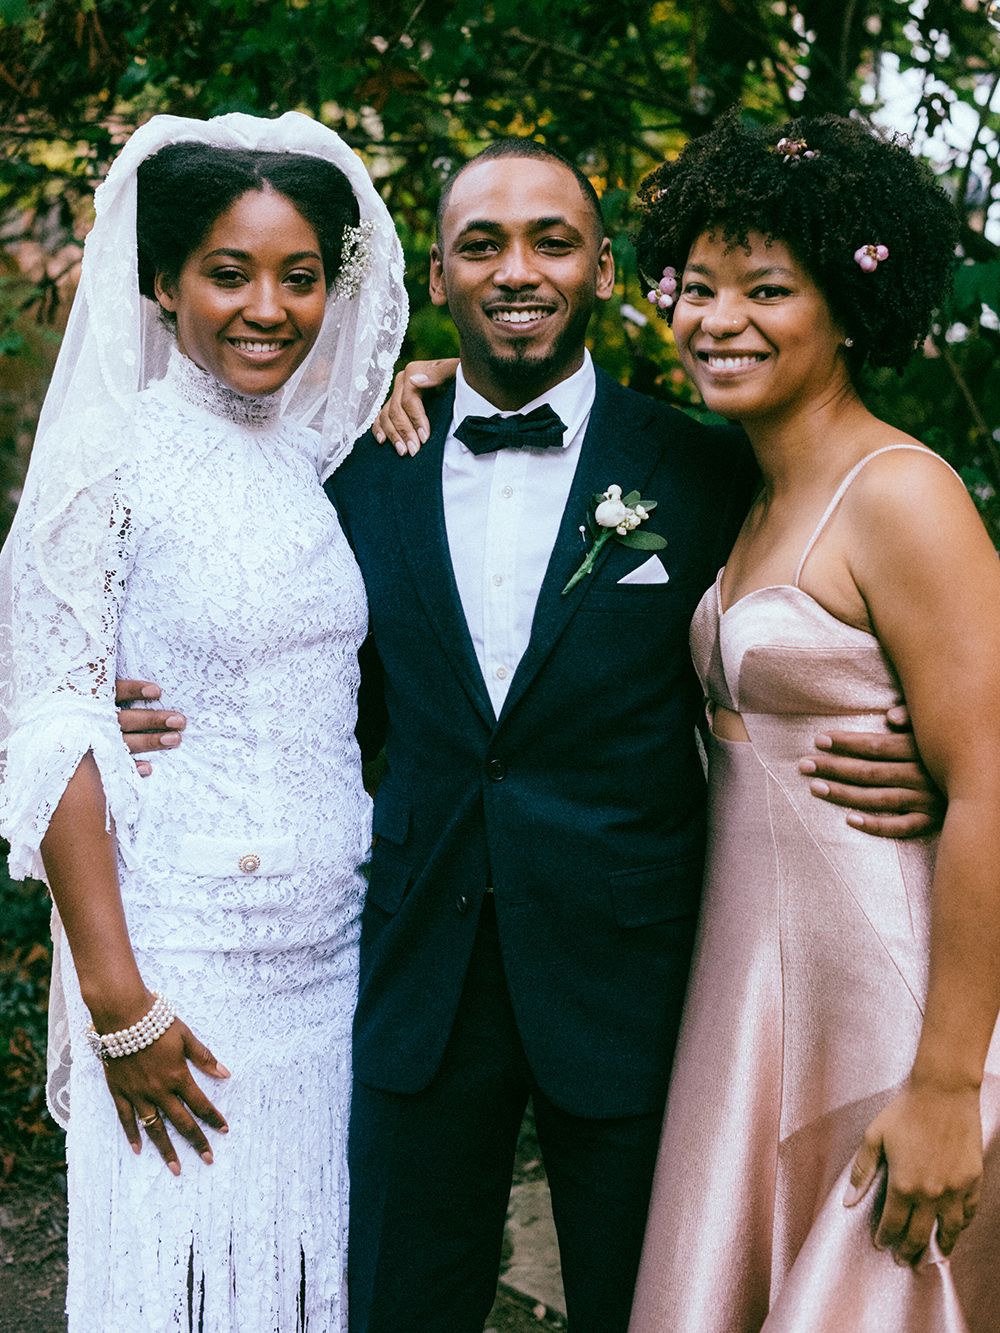 bride, groom, and bridesmaid